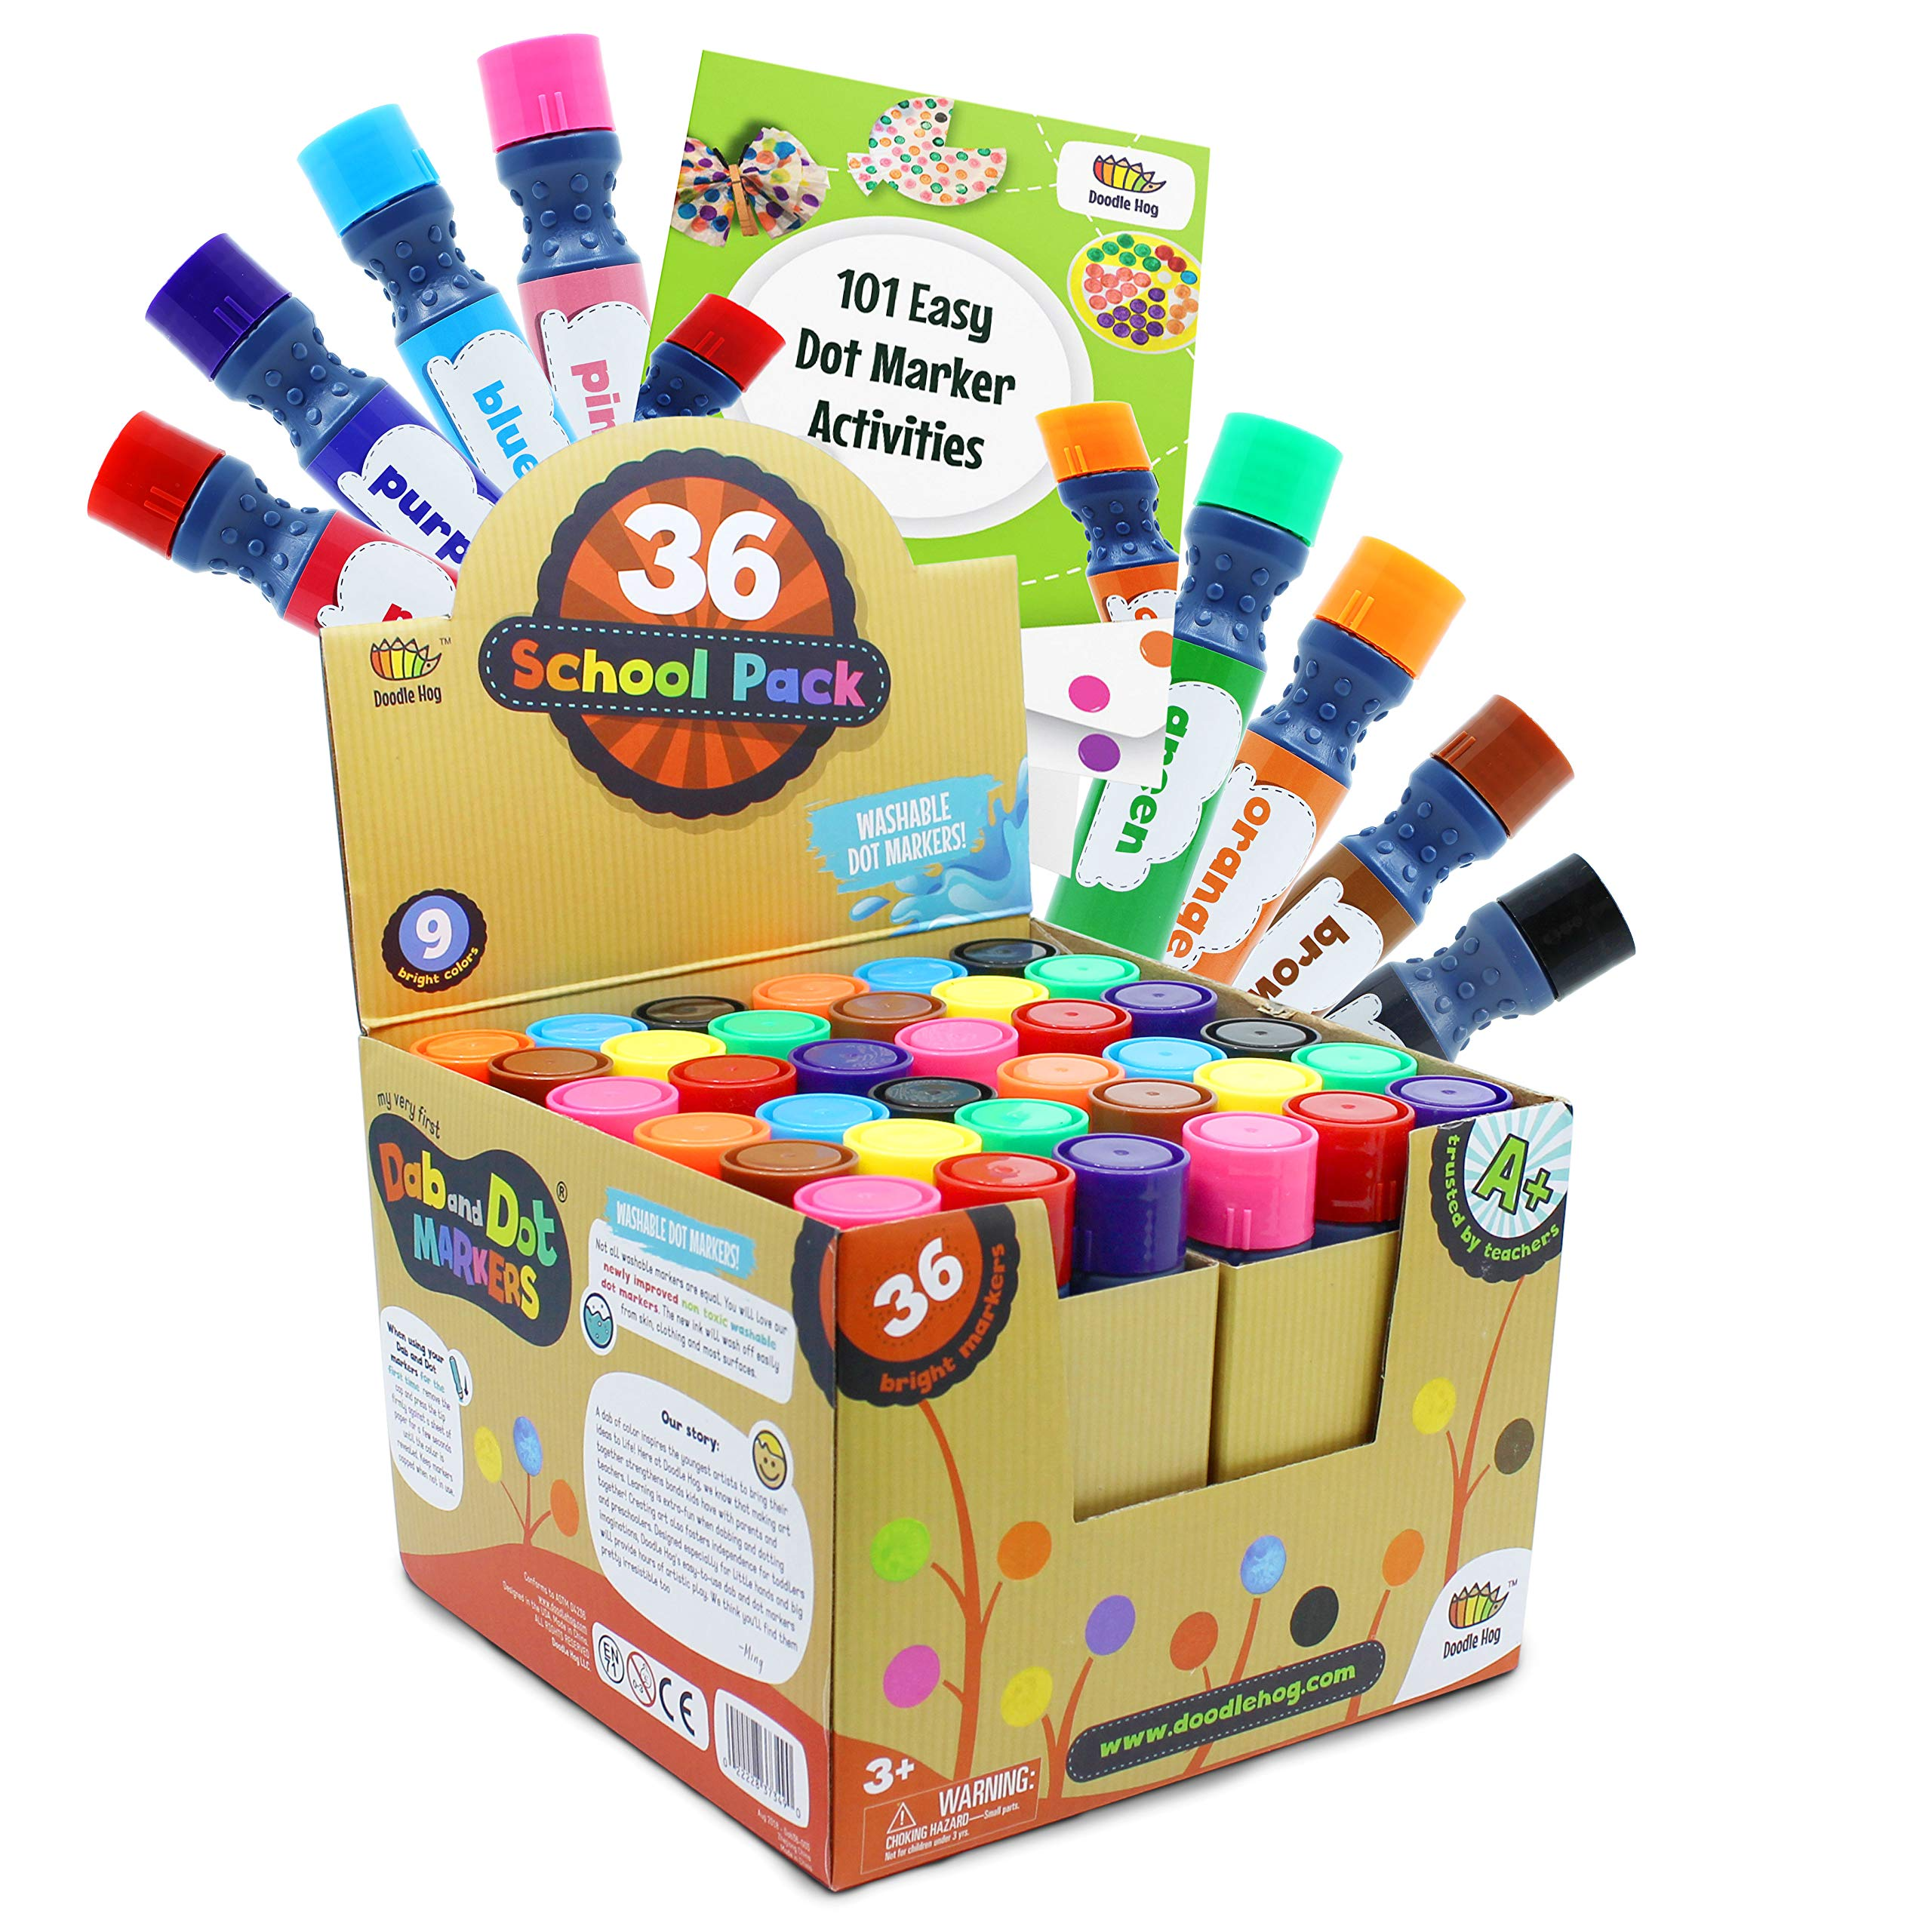 Incredible Value Dot Markers Class Pack in 36 Pack, School and Class Supplies of Dabbers, Daubers, Washable Art Markers in Bulk with Free PDF 101 Dot Markers Activities by Dab and Dot Markers